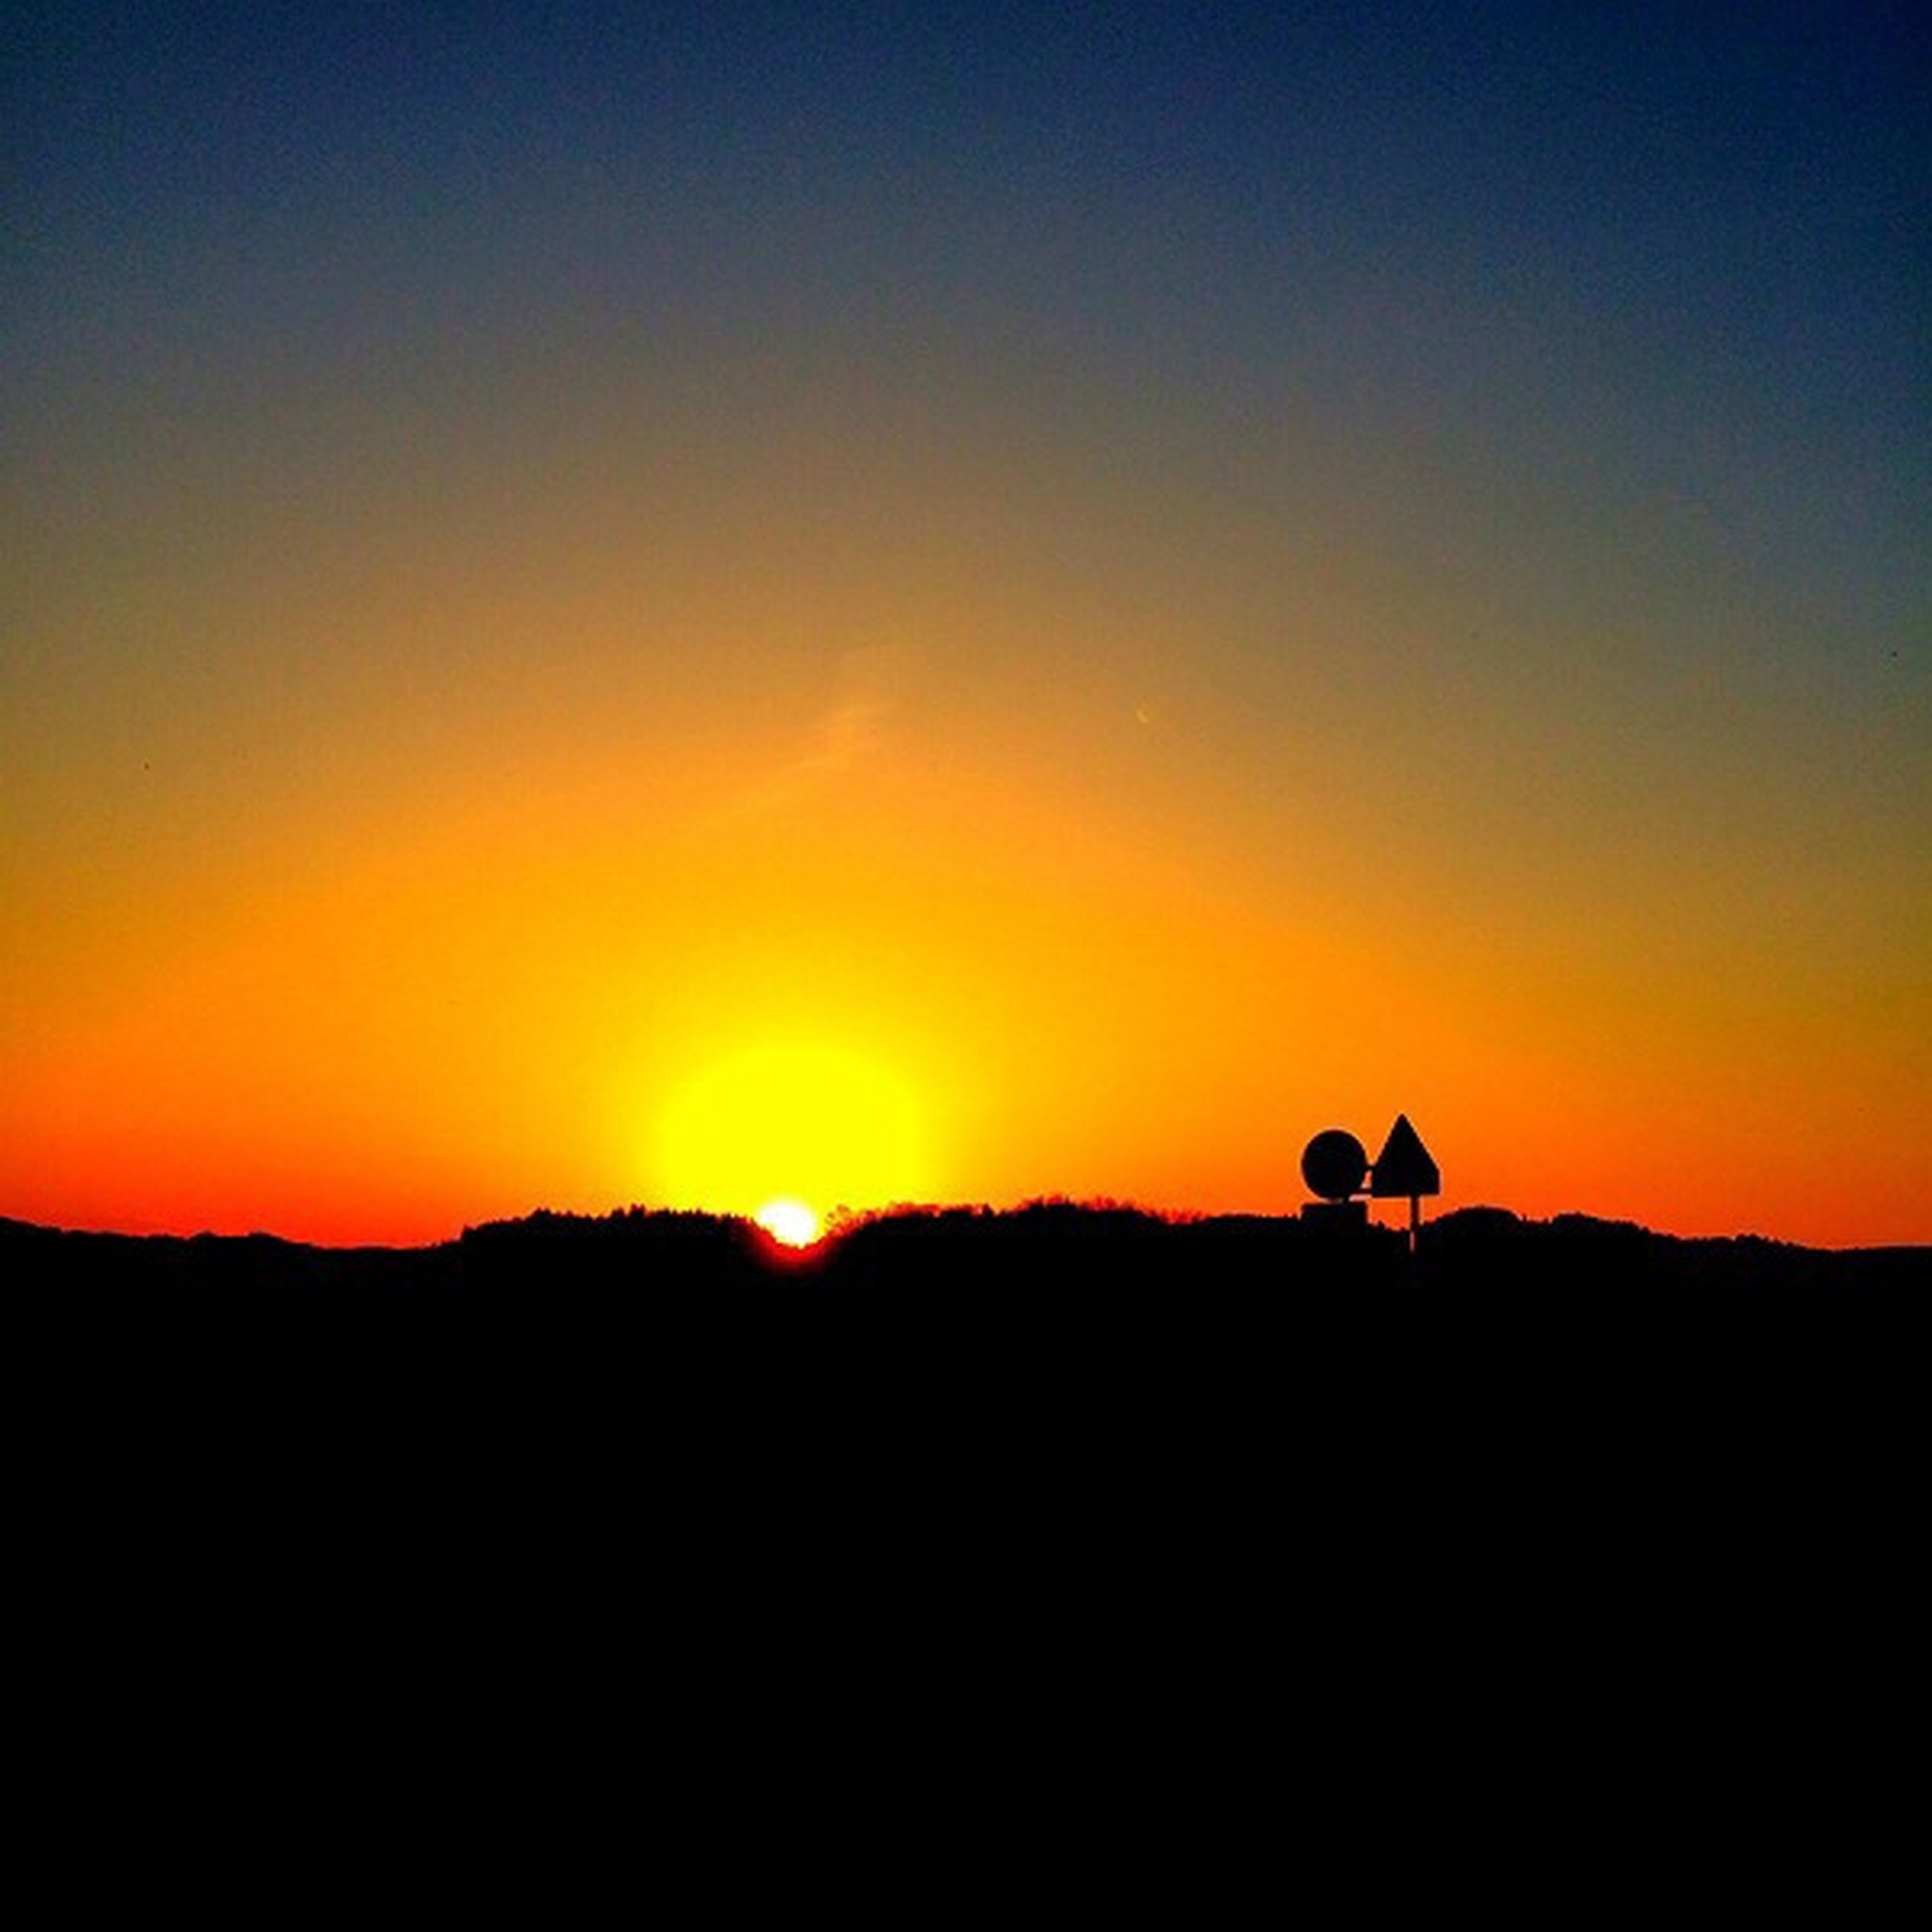 sunset, silhouette, orange color, copy space, scenics, tranquil scene, beauty in nature, tranquility, landscape, nature, idyllic, clear sky, sky, mountain, sun, dark, outline, outdoors, horizon over land, non-urban scene